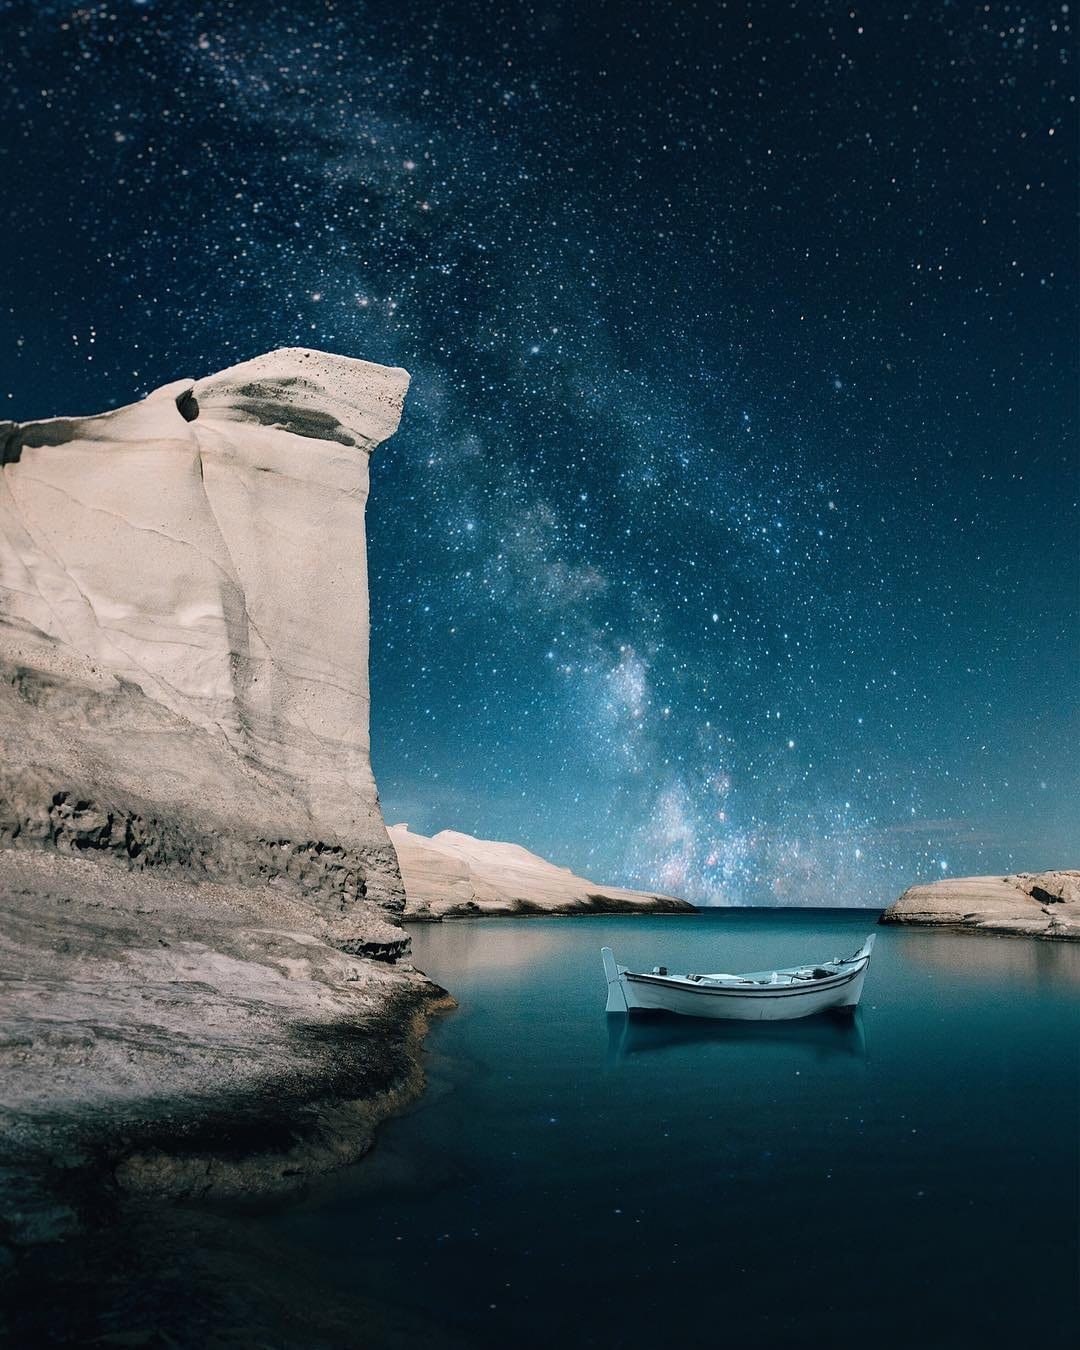 milos at night stars and fishing boat